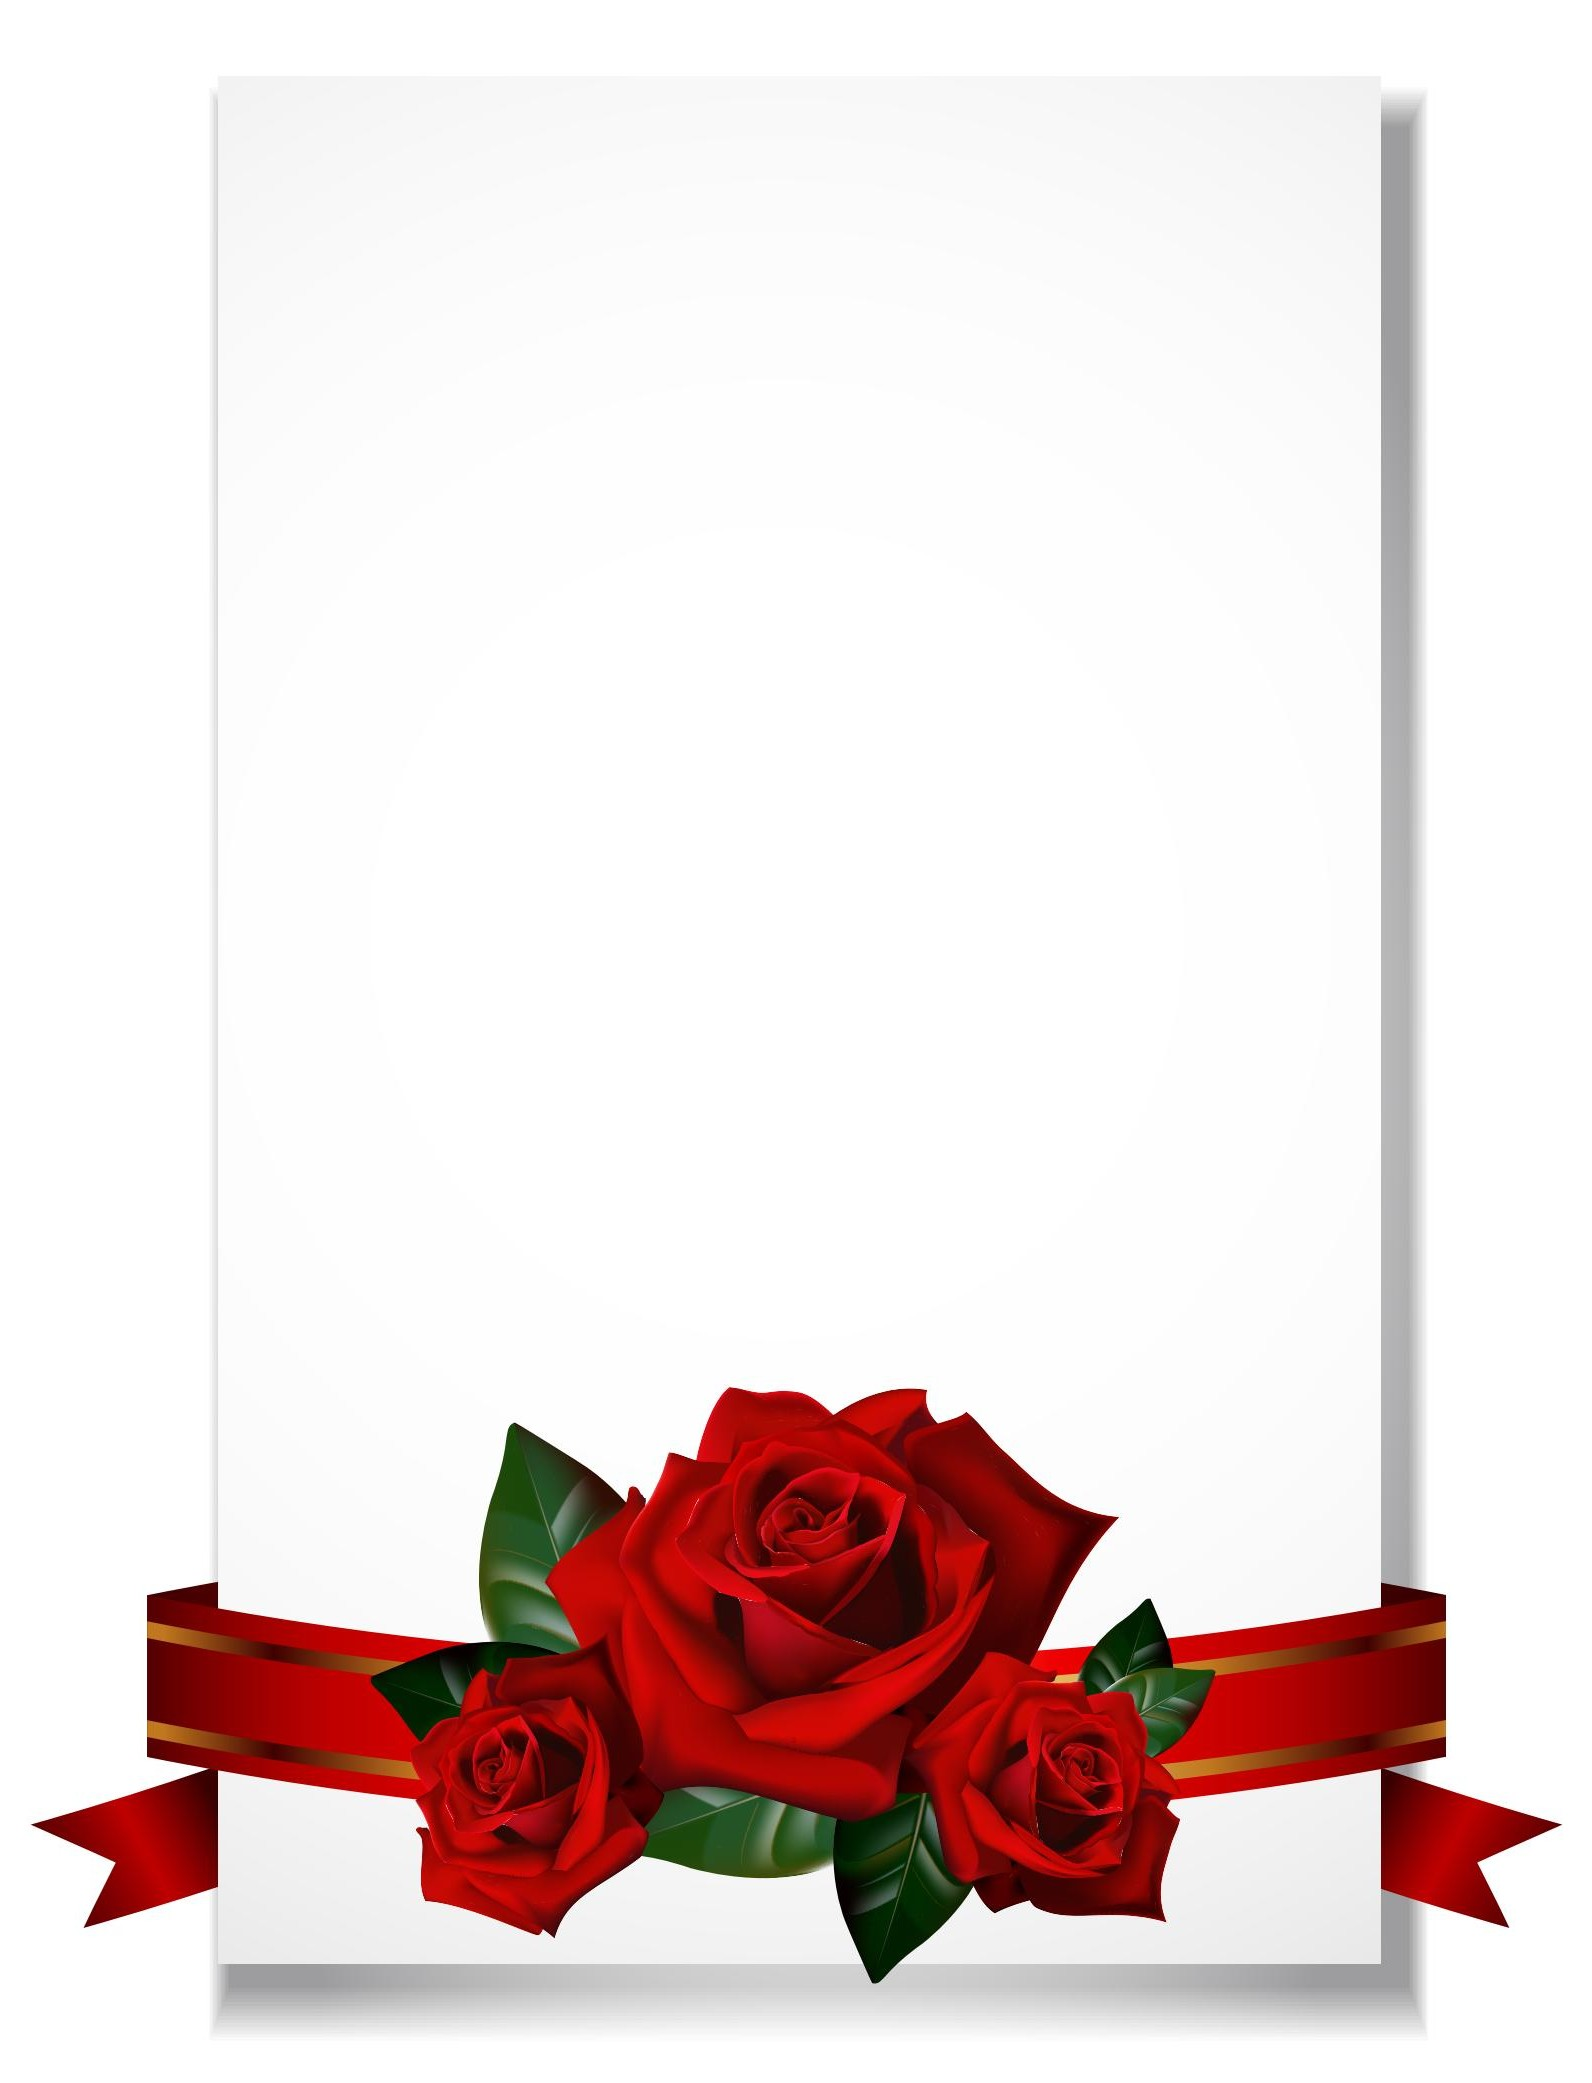 Red Wedding Border Png - ClipArt Best